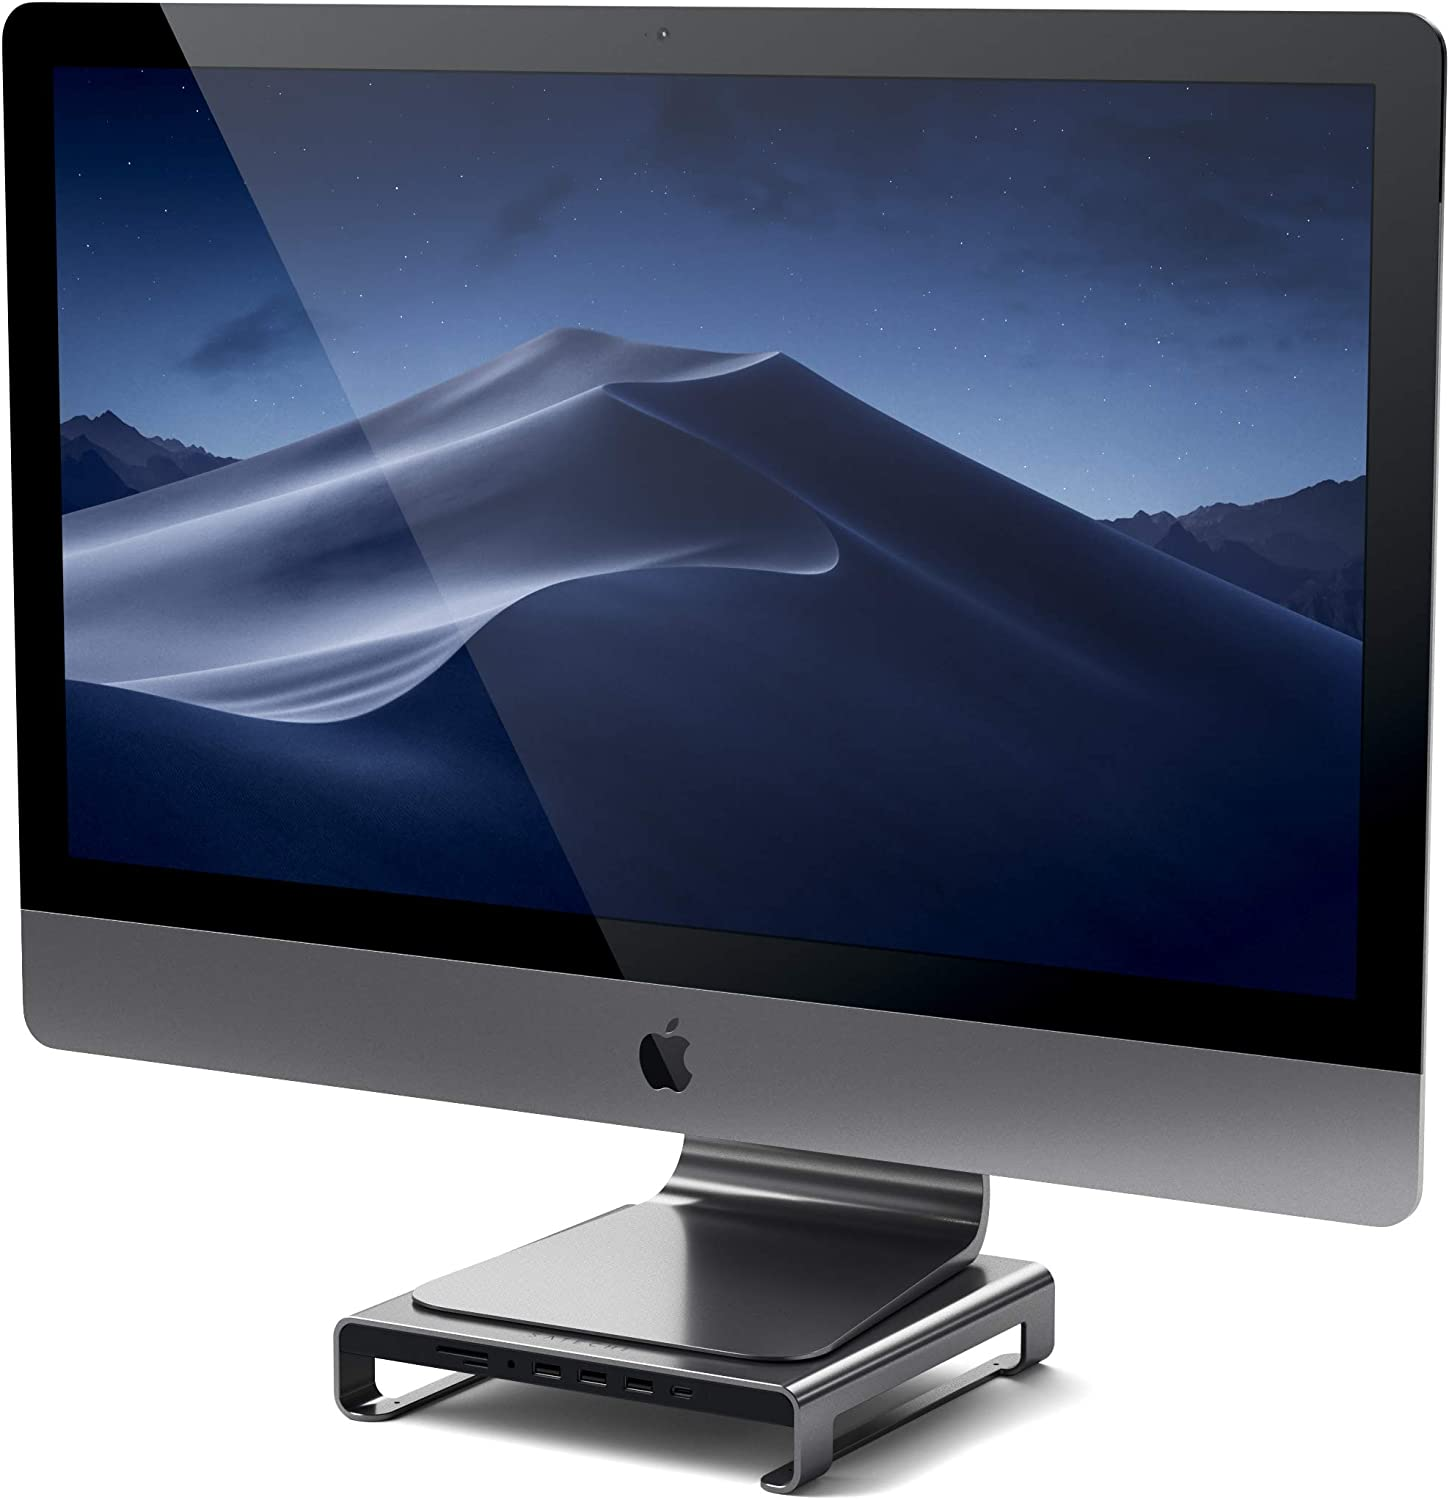 Satechi Type-C Aluminum Monitor Stand Hub with USB-C Data, USB 3.0, Micro/SD Card Slots & 3.5mm Headphone Jack - Compatible with iMac Pro, 2019/2017/2016 iMac (Space Gray)